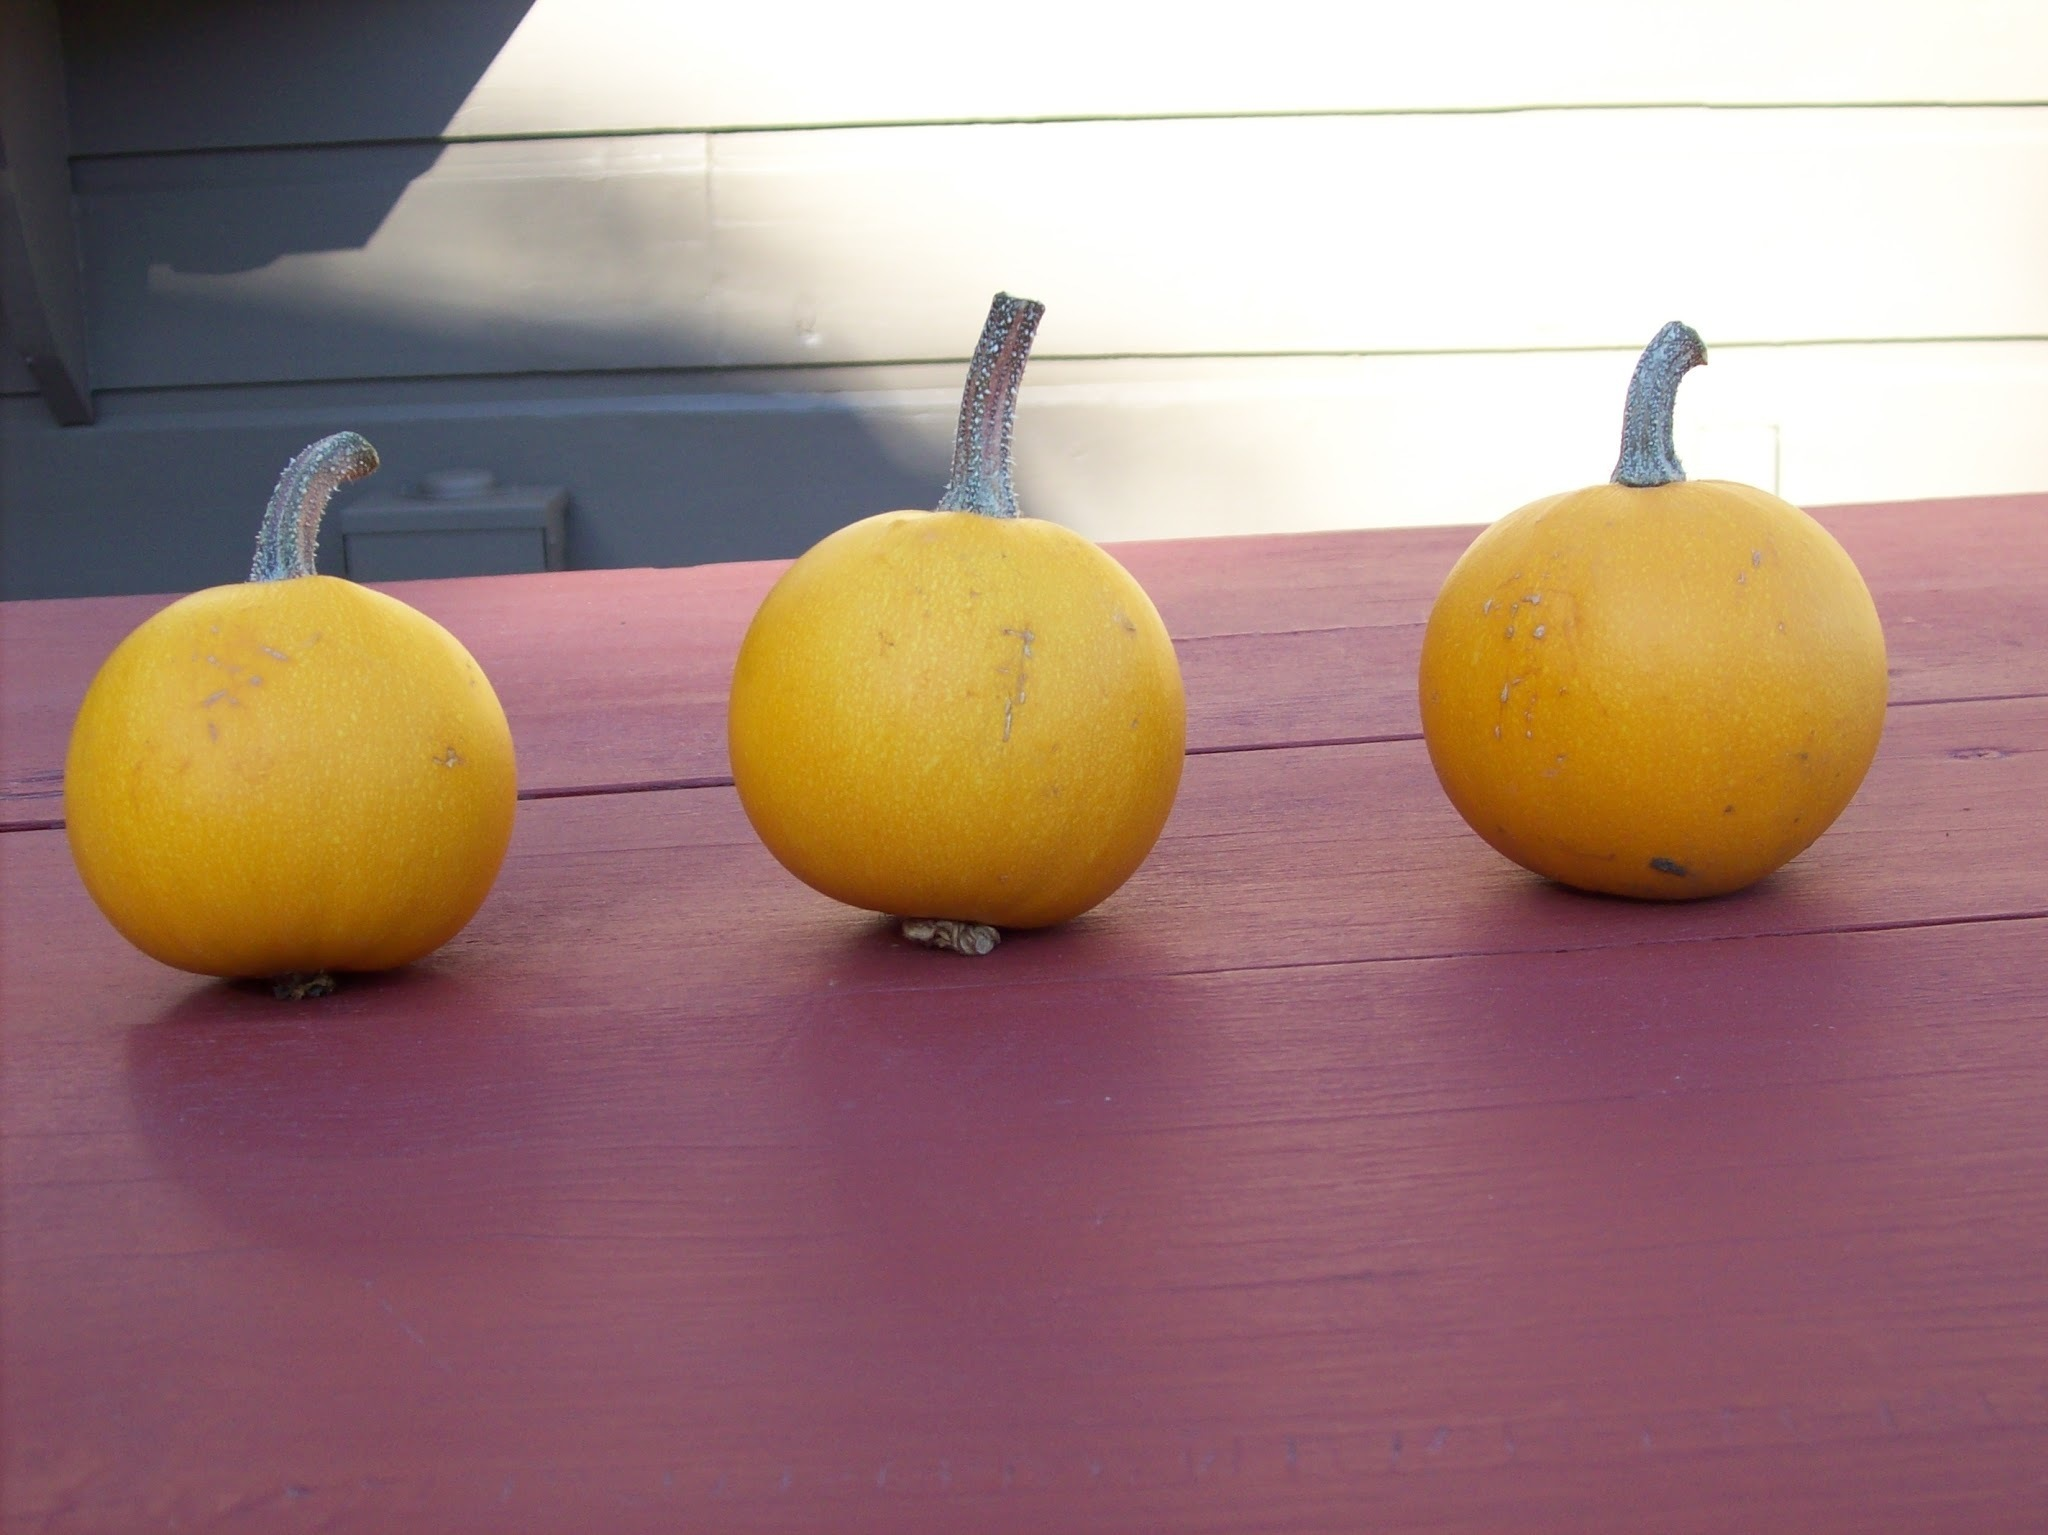 squash week at food fest...want a recipe for pomme d'or squash?